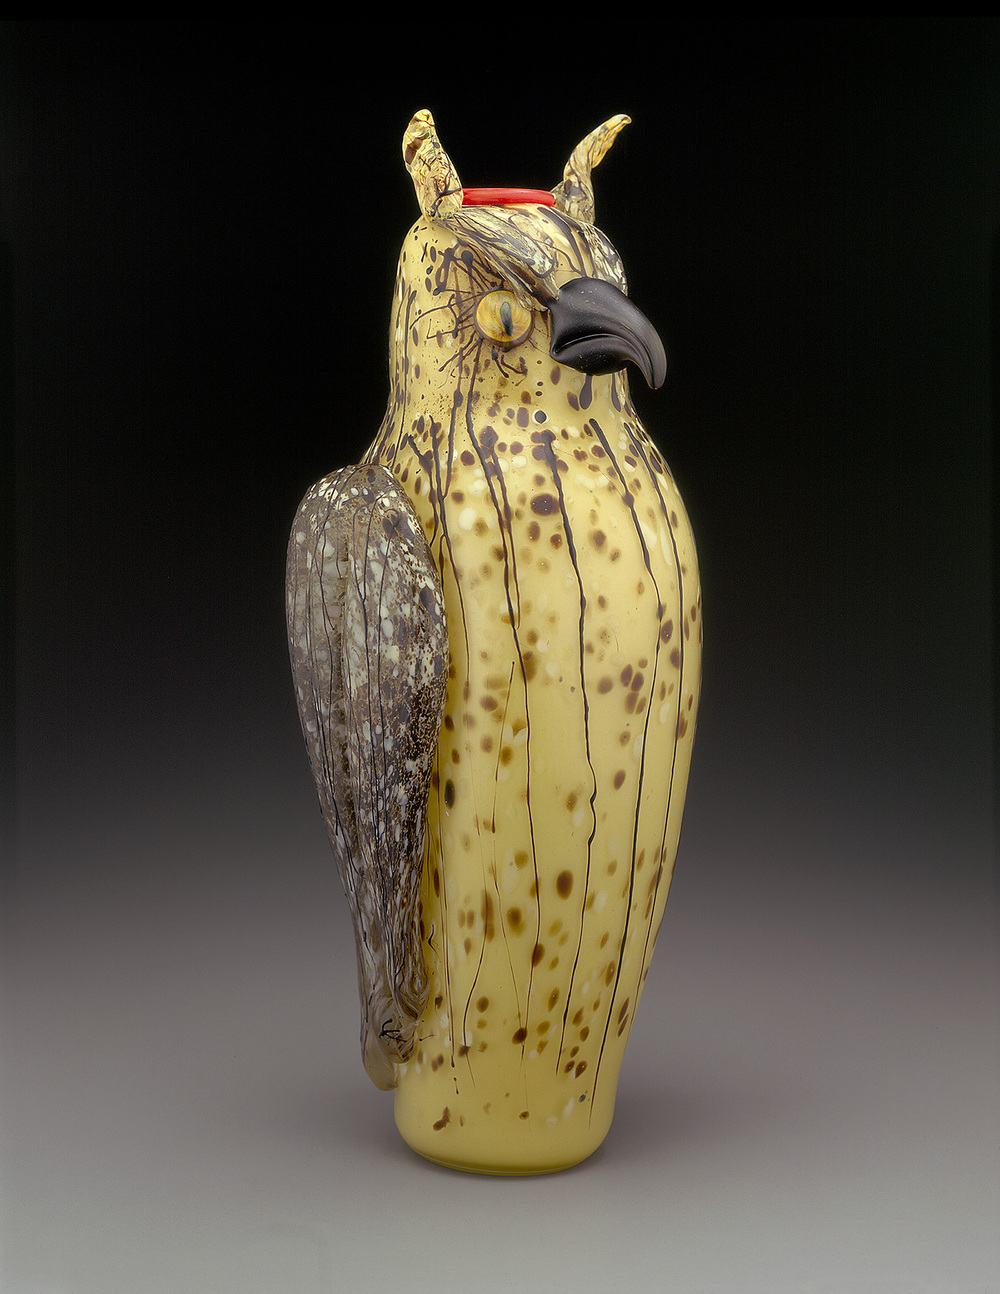 Owl   1998. Blown glass, sandblasted and acid polished. 21 x 9 x 7""